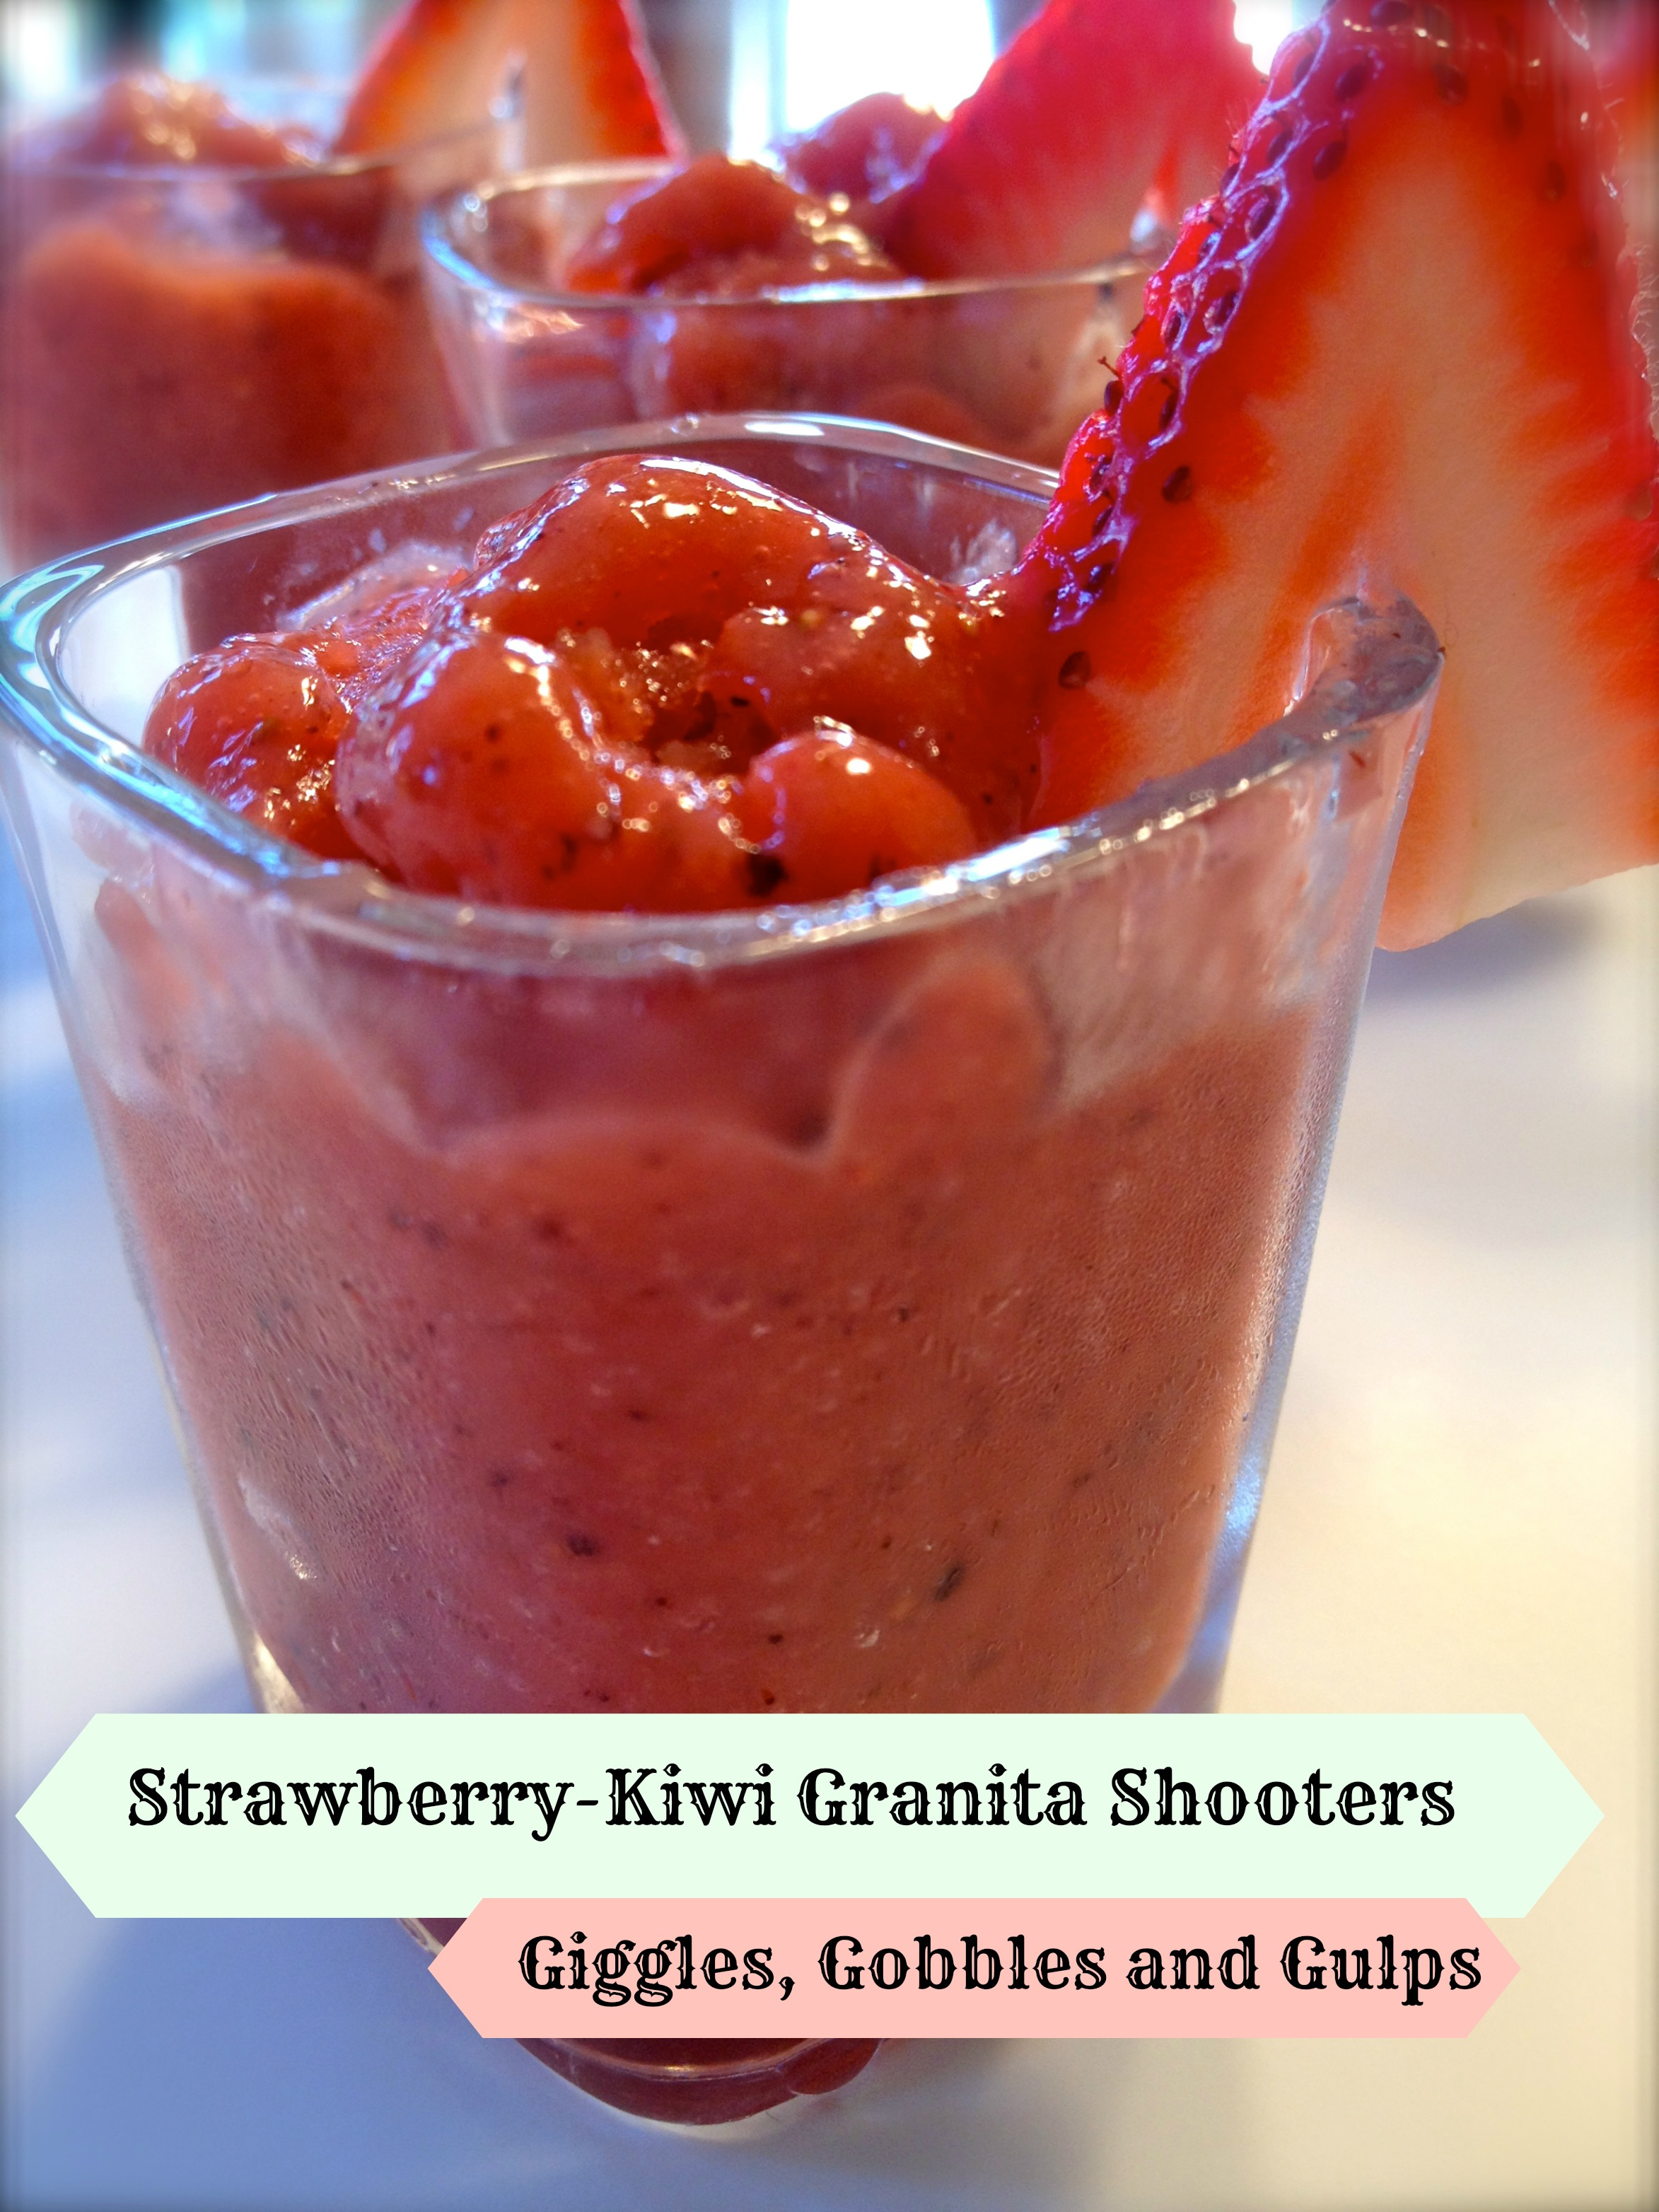 Strawberry-Kiwi Granita Dessert Shooter Recipe - Giggles, Gobbles and ...